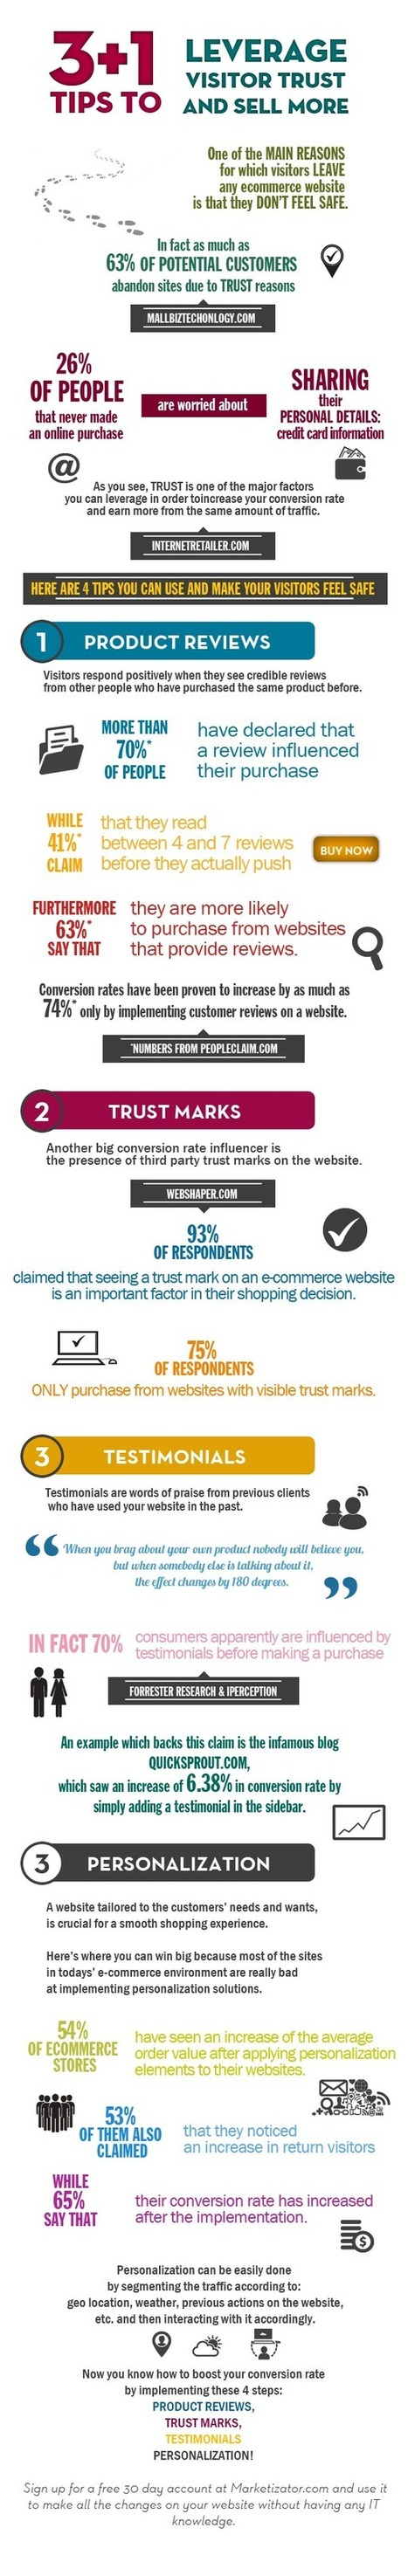 3 tips to leverage visitor trust and sell more | Conversion optimization | Scoop.it